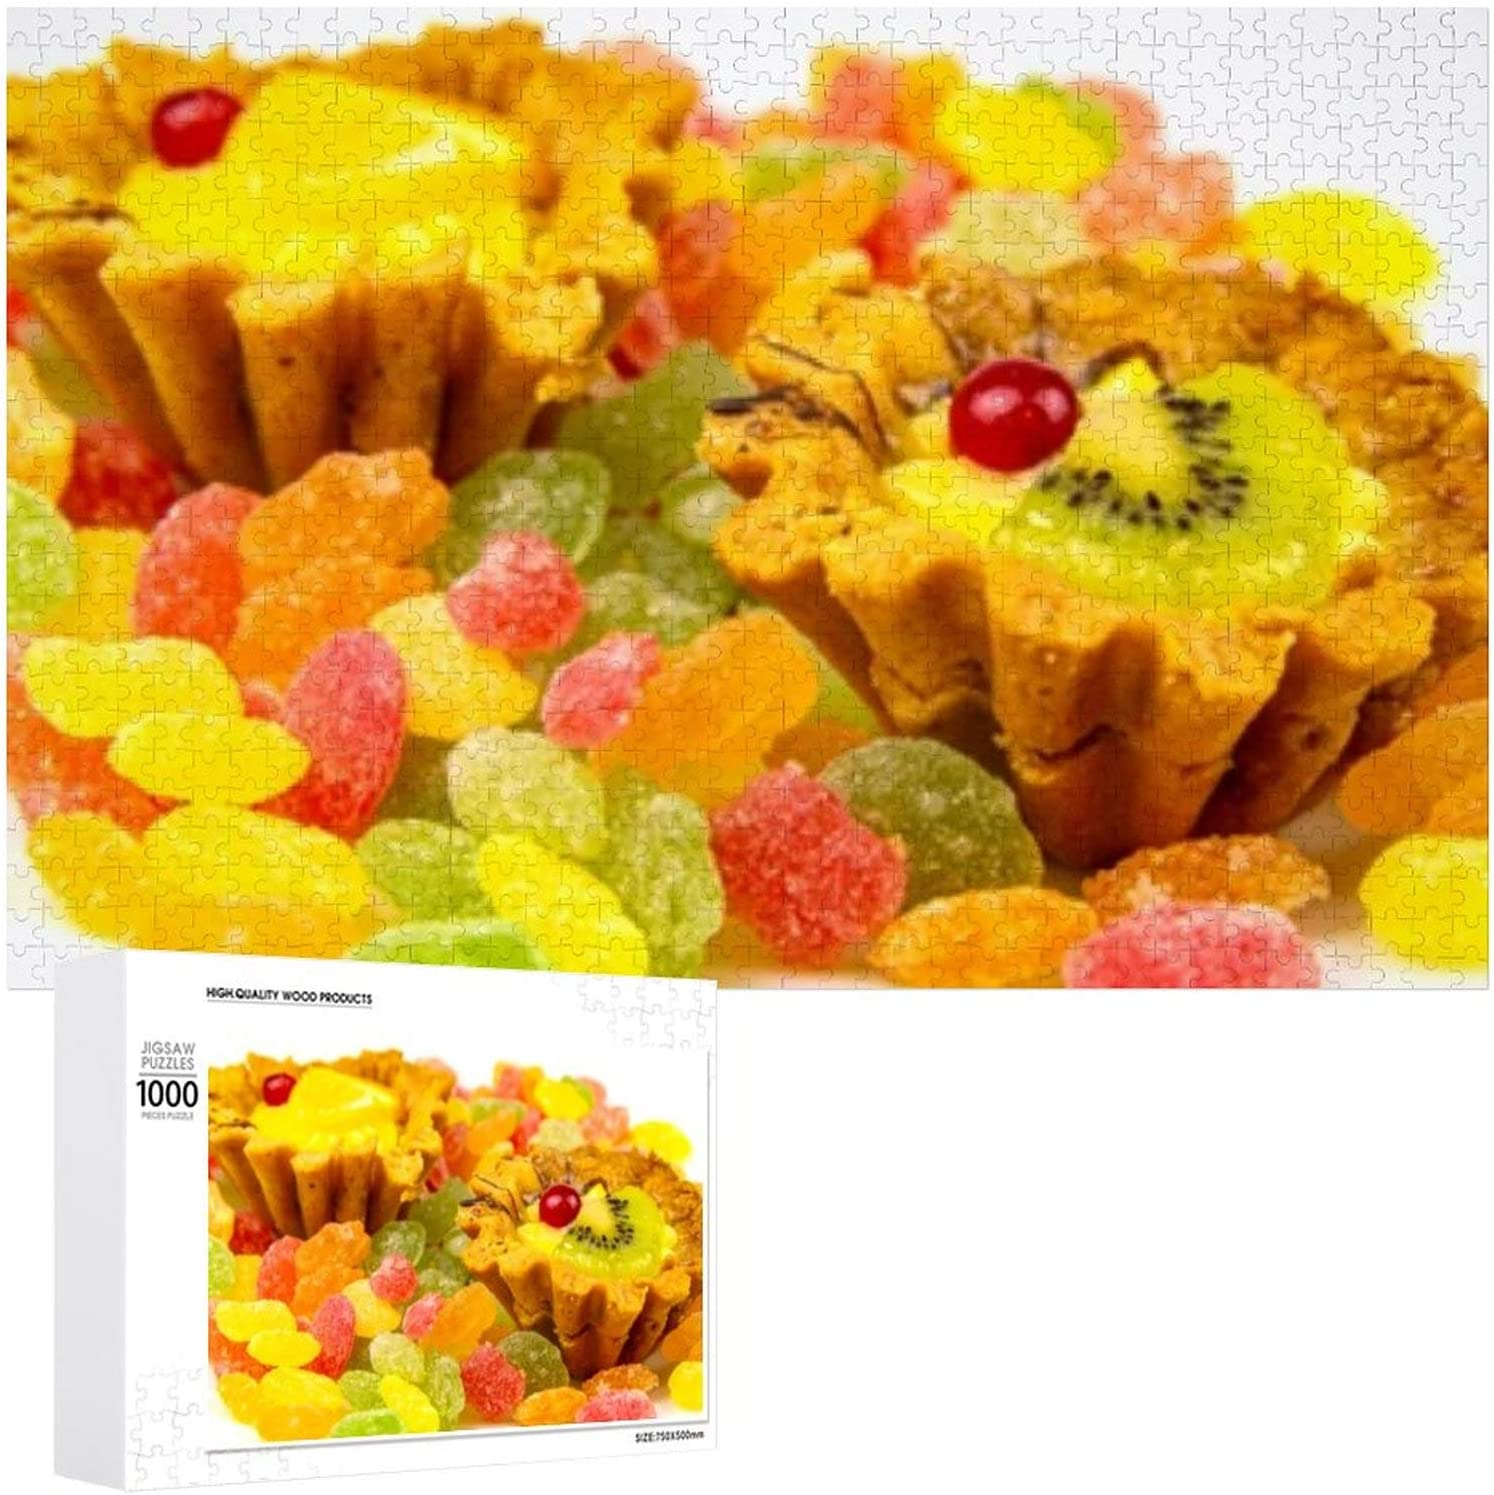 Dessert Sand Save money Basket Fruits Red - Puzzles for 1000 Adults Jigsaw Weekly update